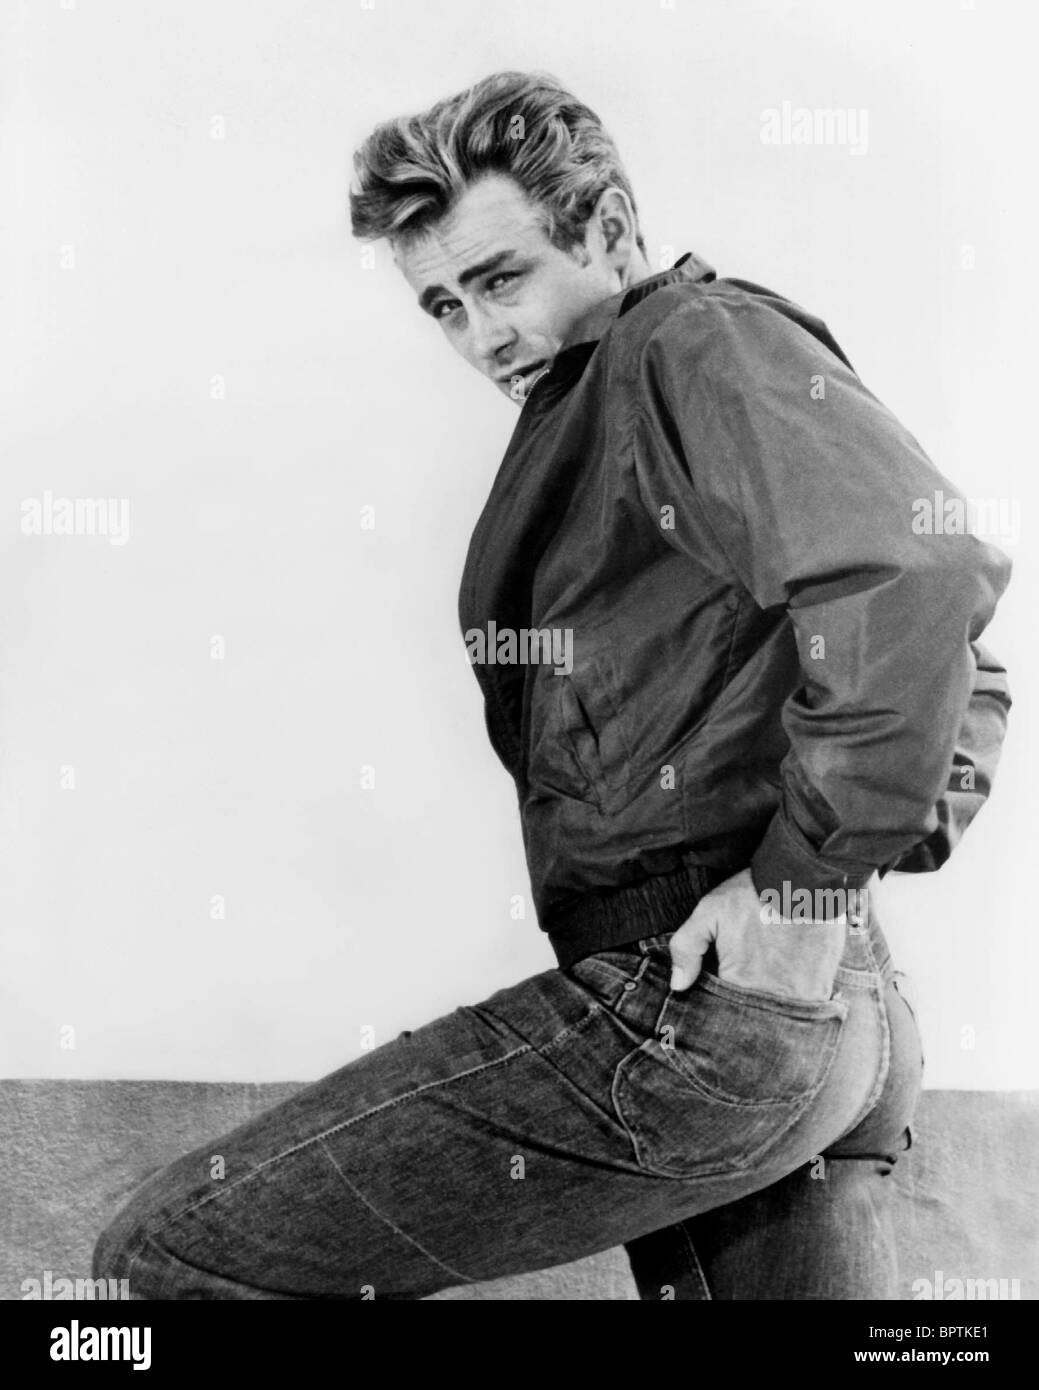 james-dean-actor-1955-BPTKE1.jpg